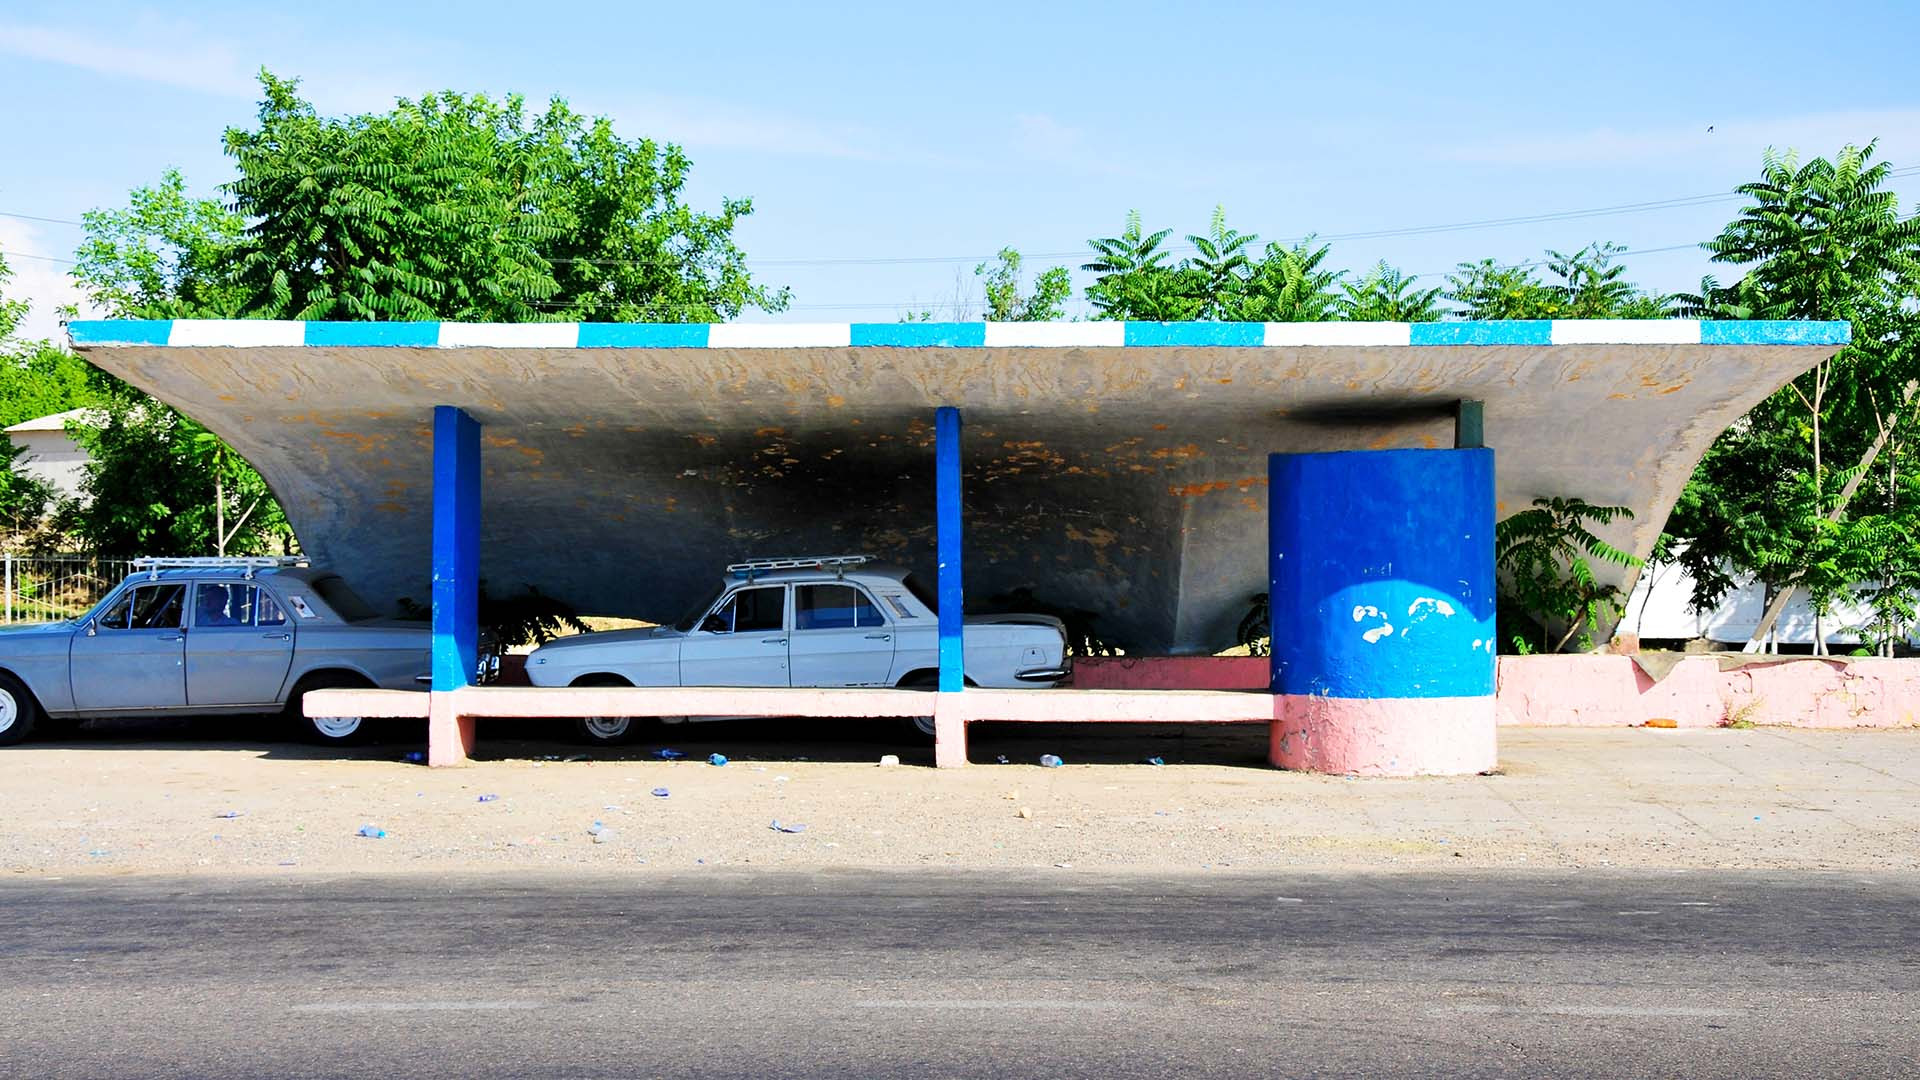 A bus stop with two cars underneath